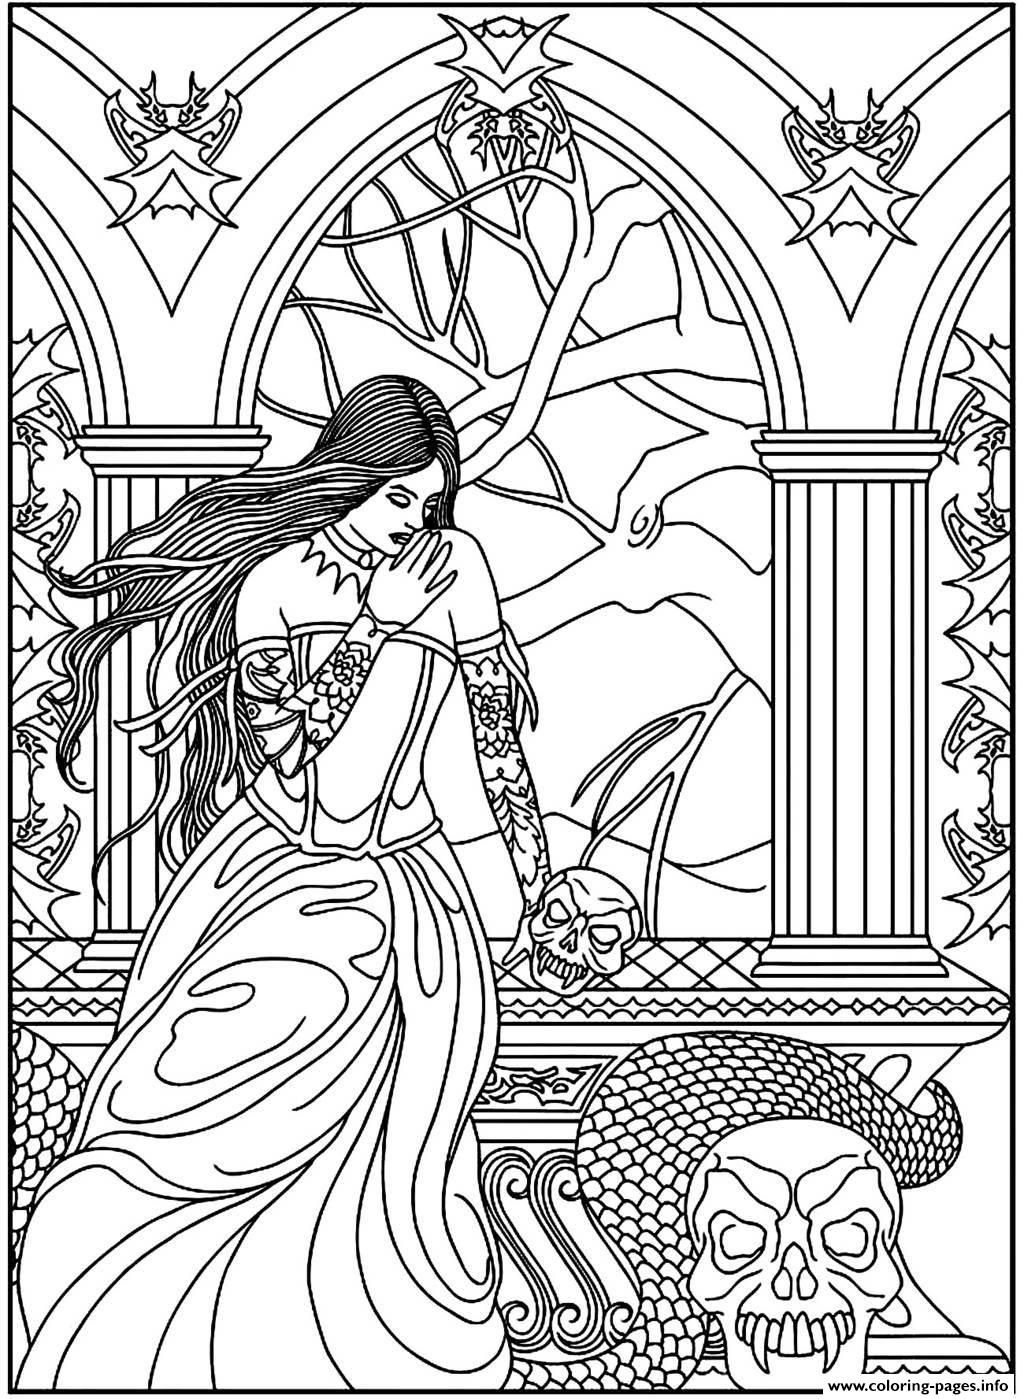 Fantasy Adult Coloring Pages - Coloring Home